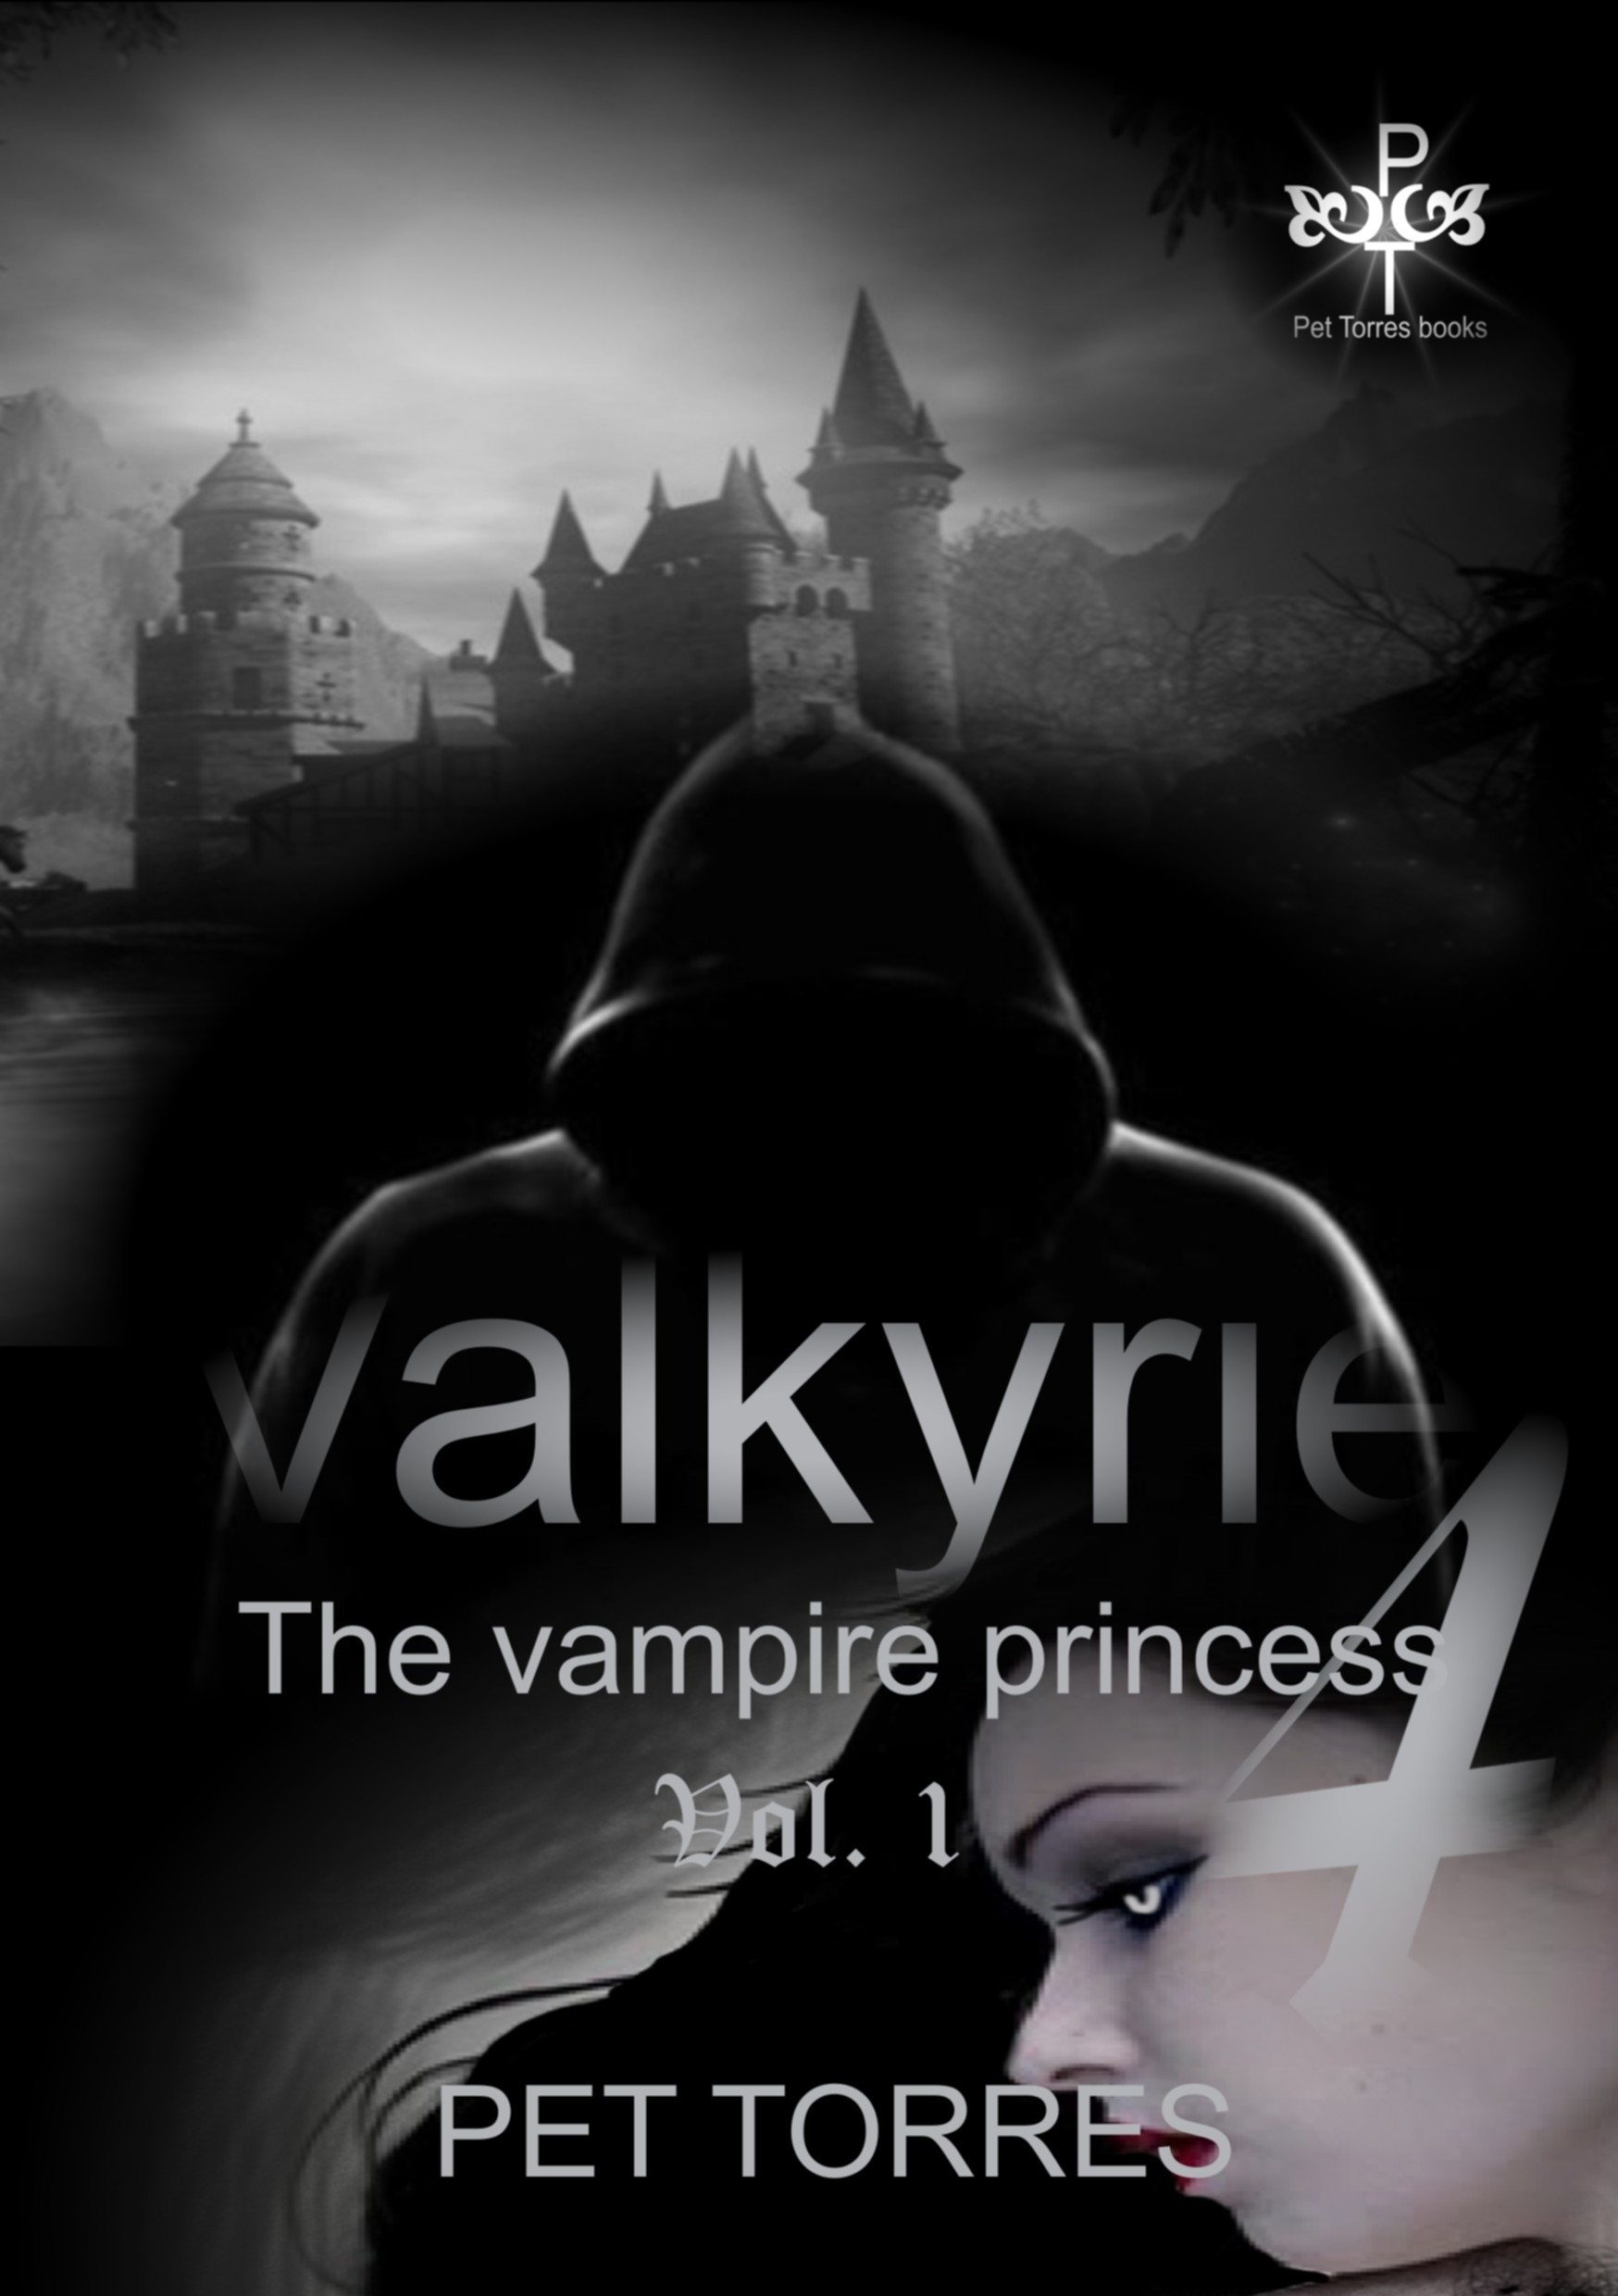 Valkyrie - the vampire princess 4 : Vol. 1